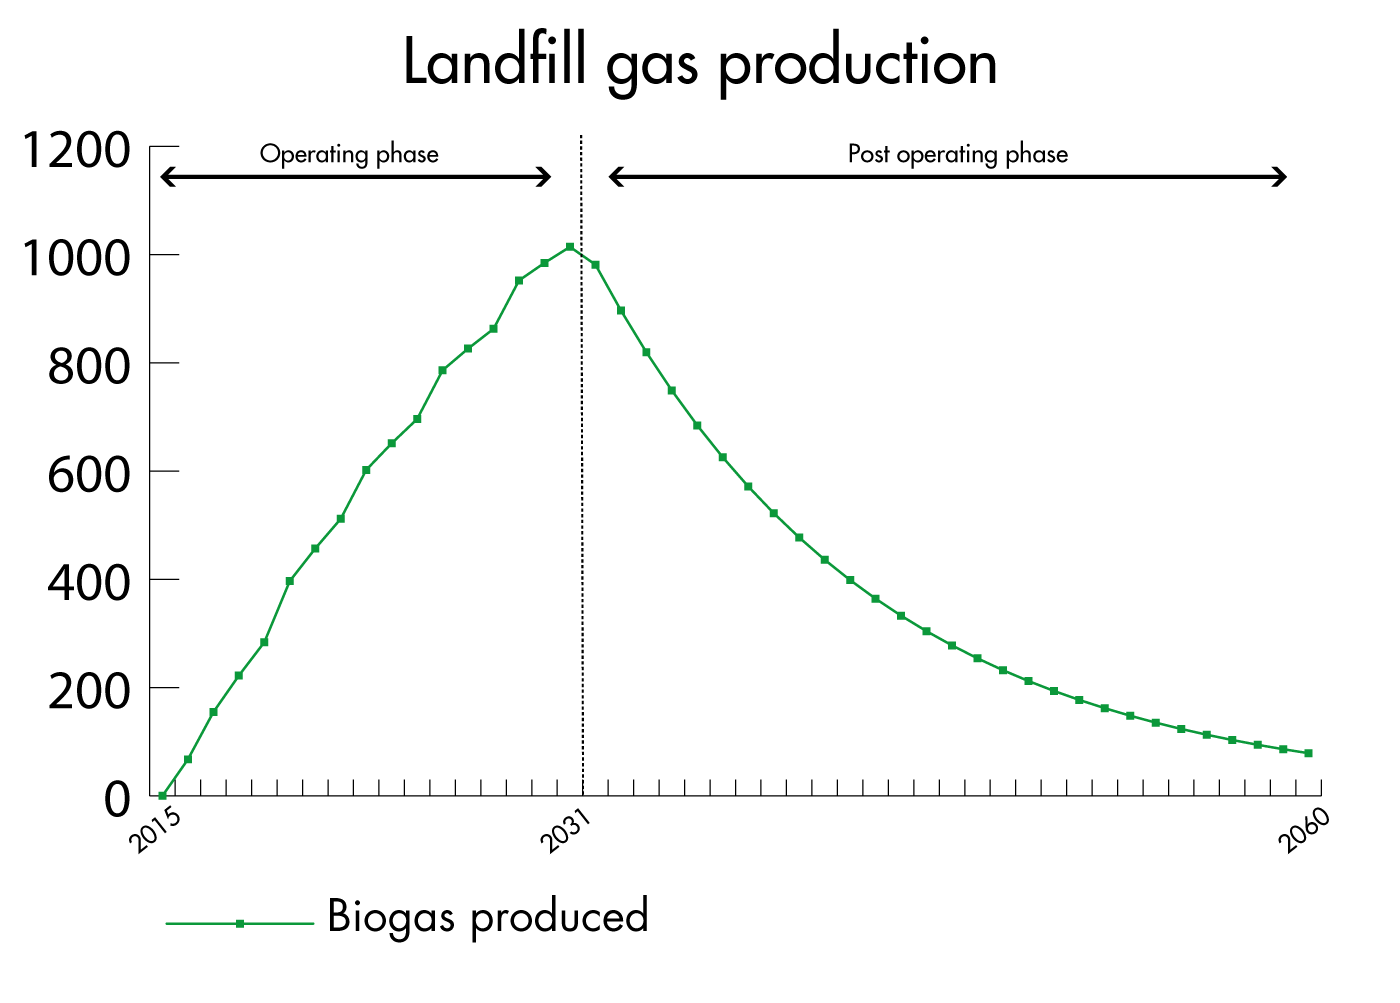 Evolution of the landfill gas production through its operation